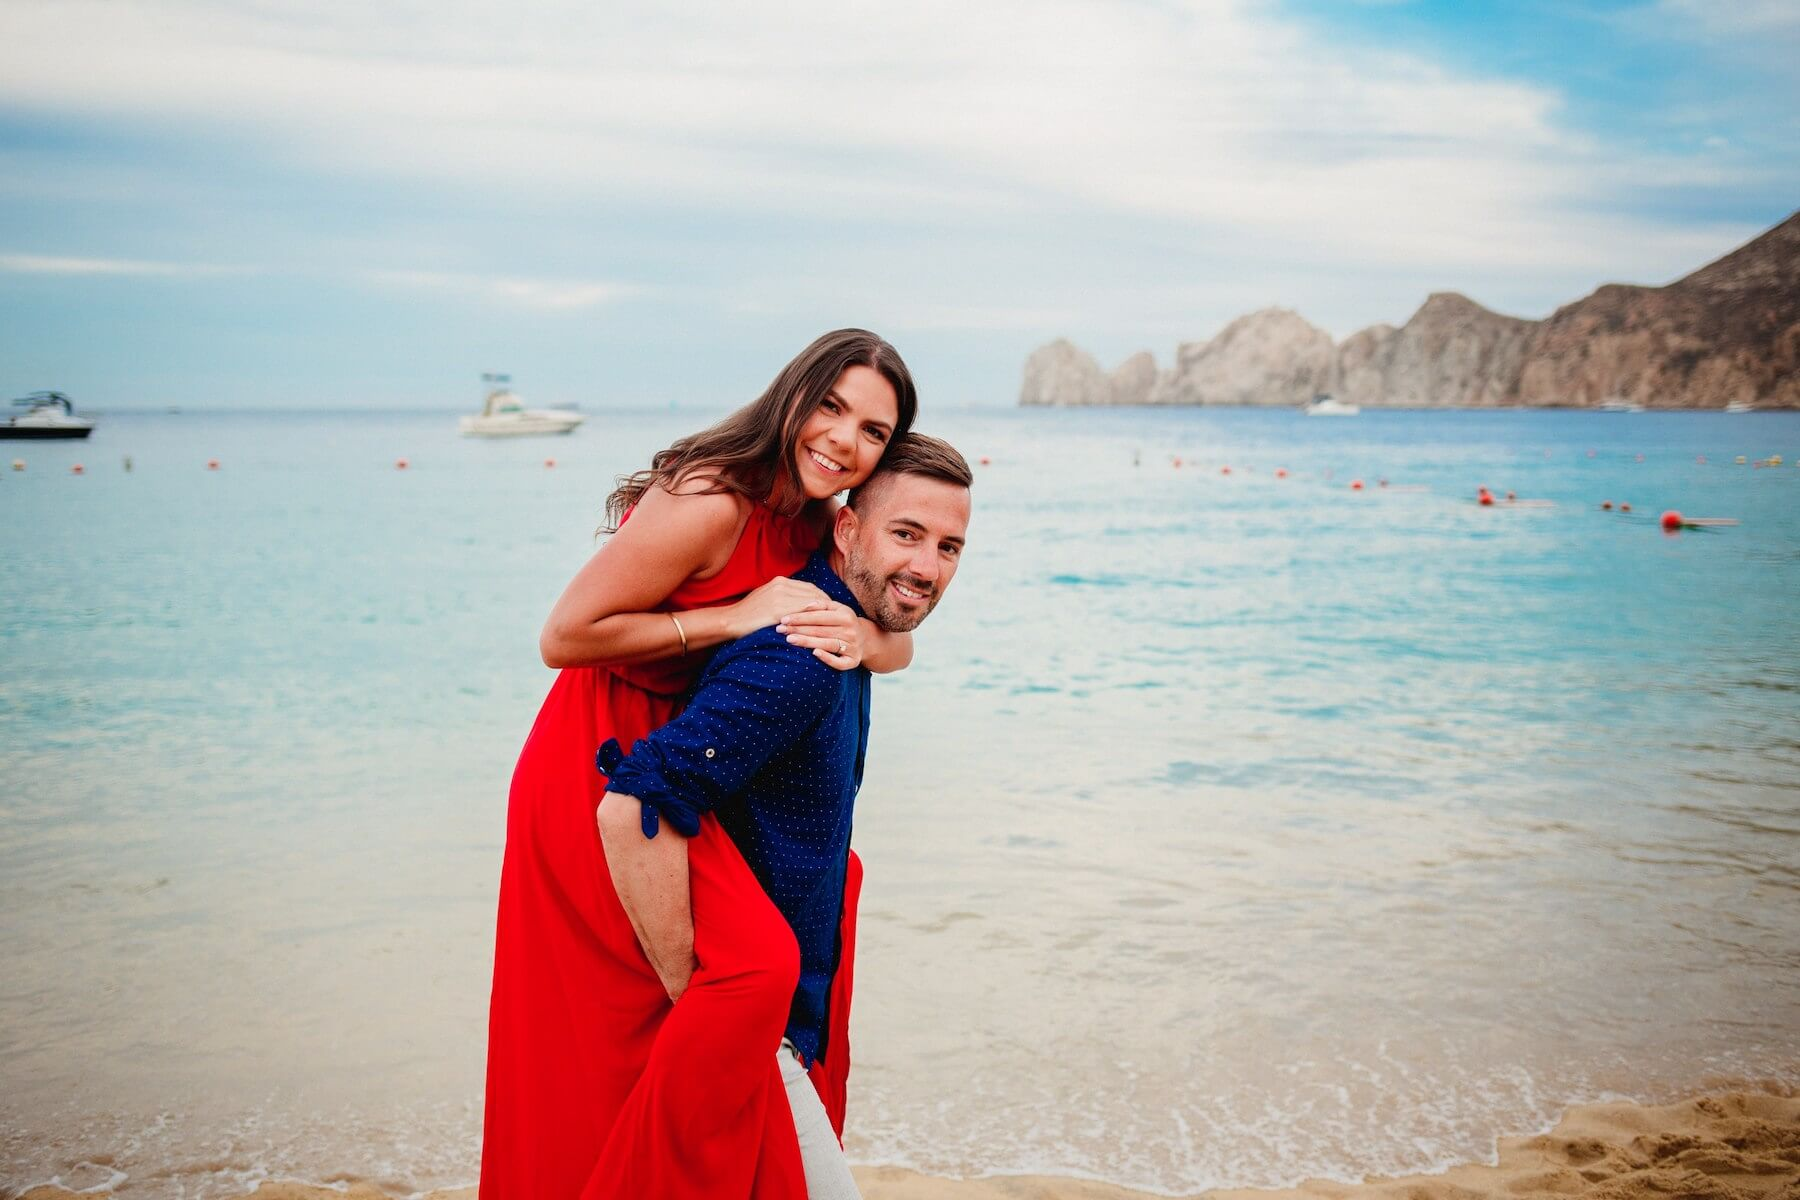 Couples trip in Cabo San Lucas, Mexico